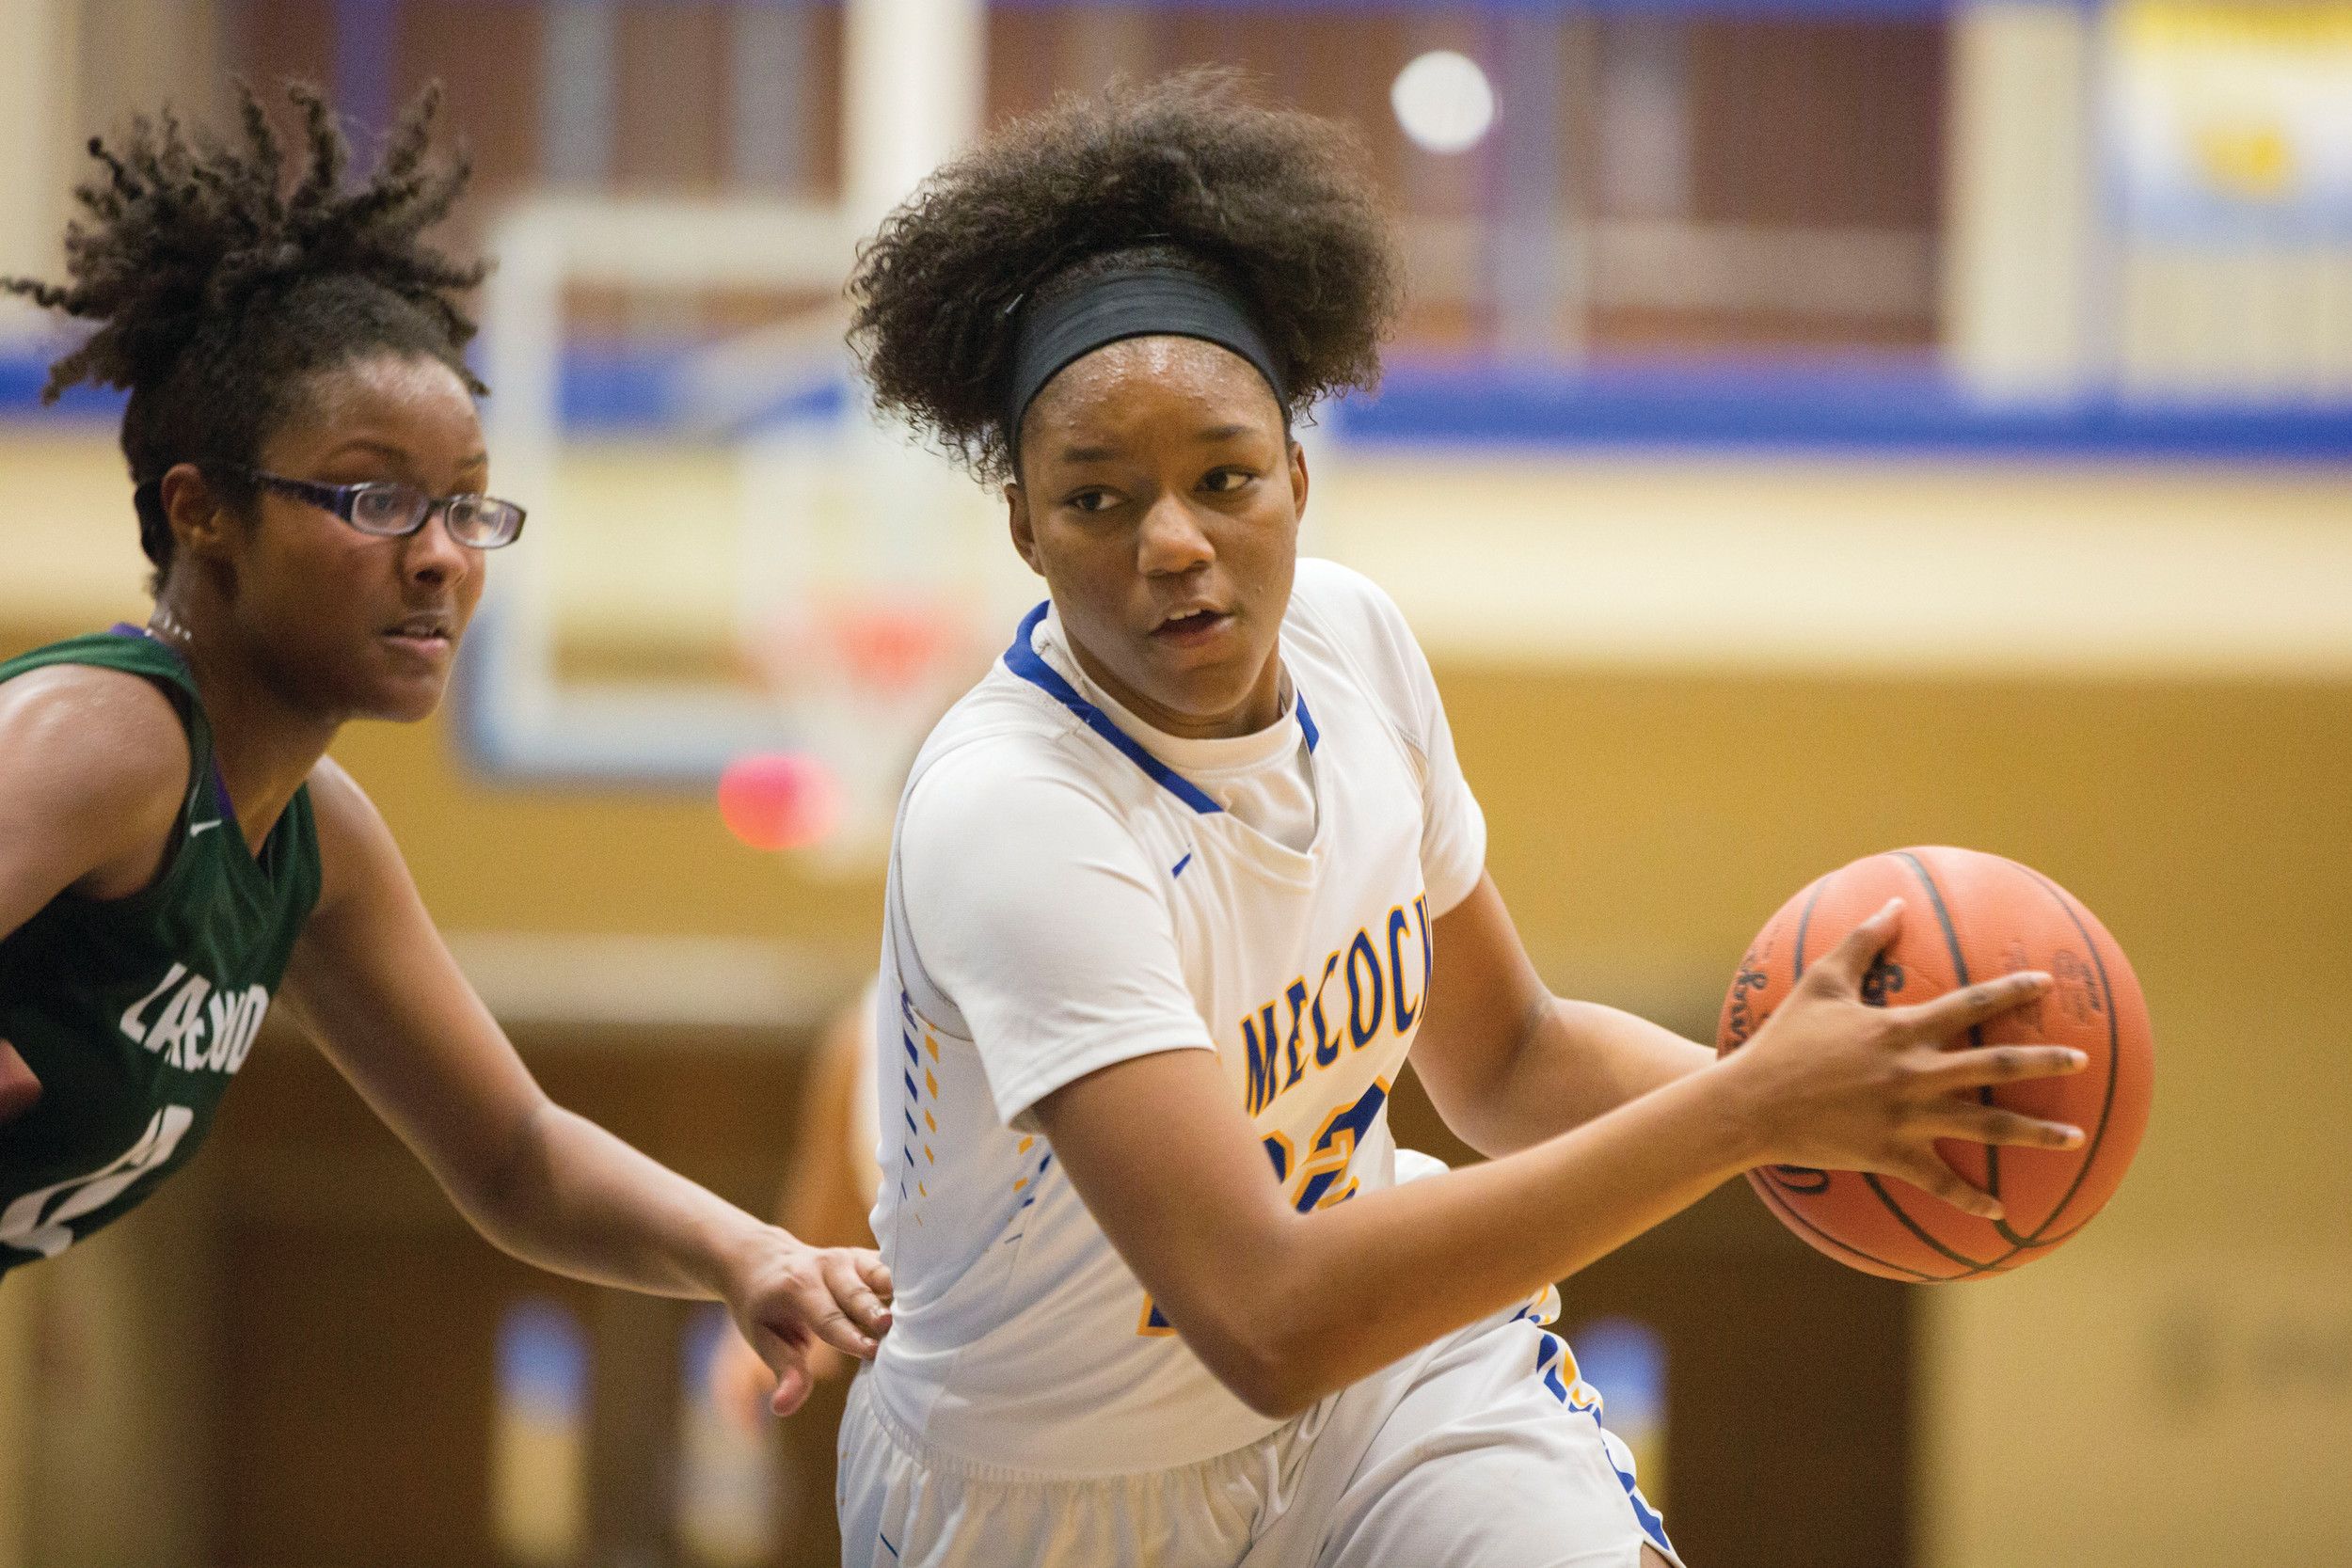 Sumter's Layken Cox, right, drives to the basket against Serena Choice of Lakewood in the Lady Gamecocks' 40-27 victory on Thursday at the SHS gymnasium.